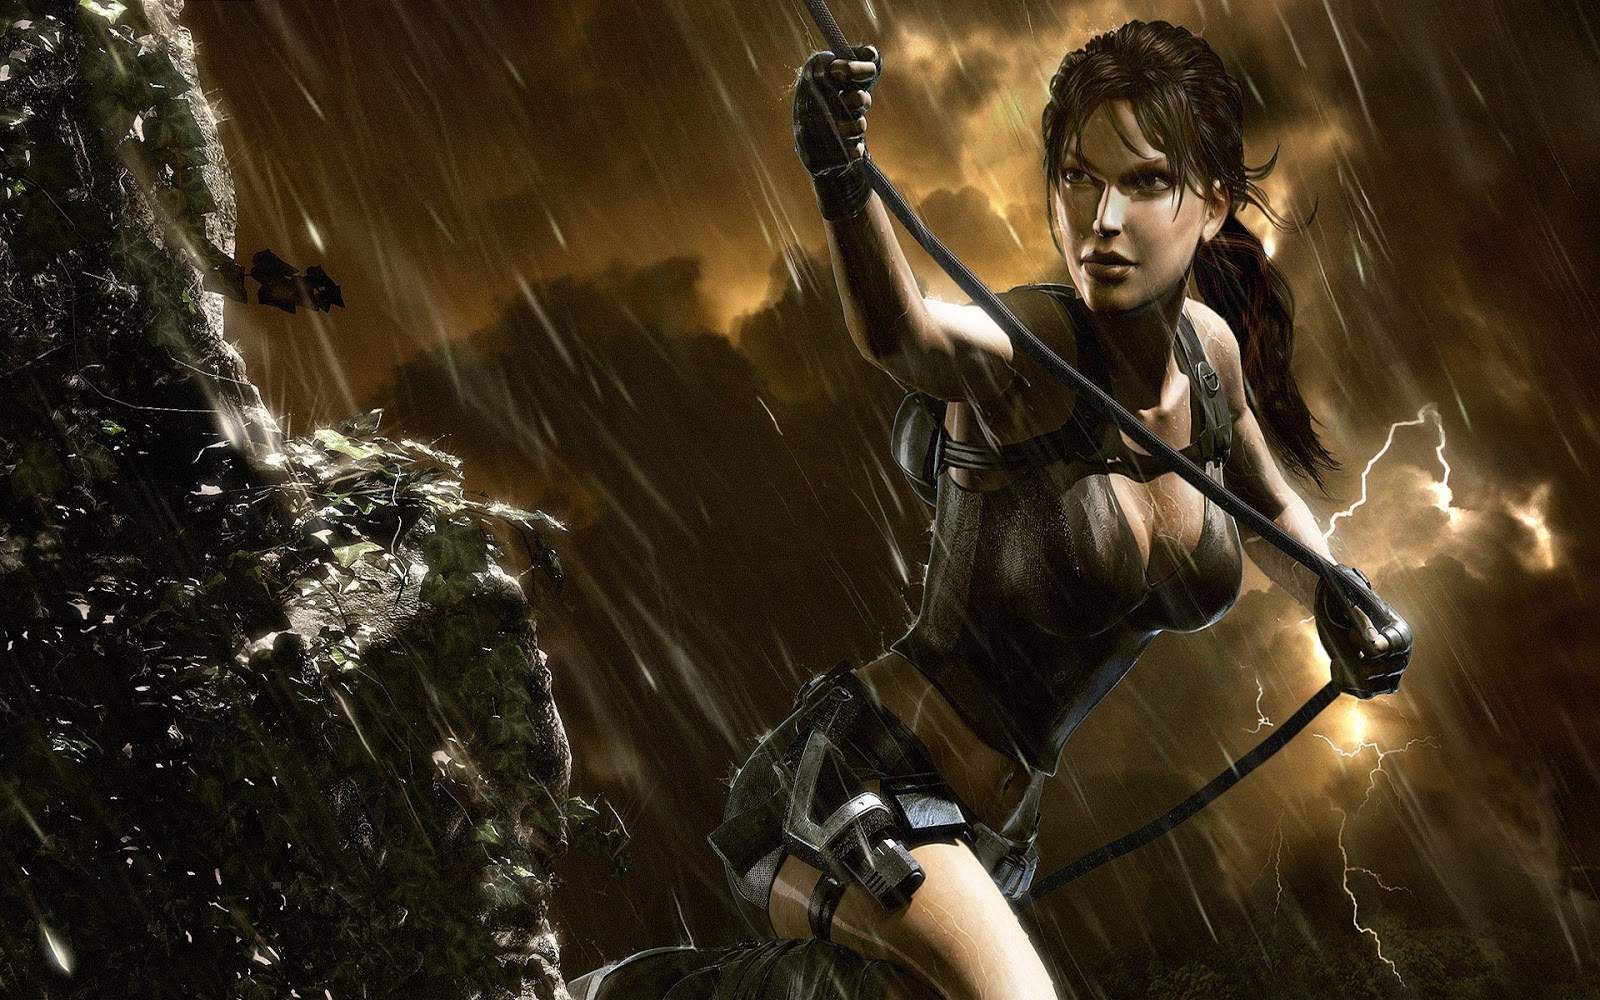 Tomb Raider 2013 Wallpaper Hd 100 Most Wanted Games 2013 Wallpapers 1920x1080